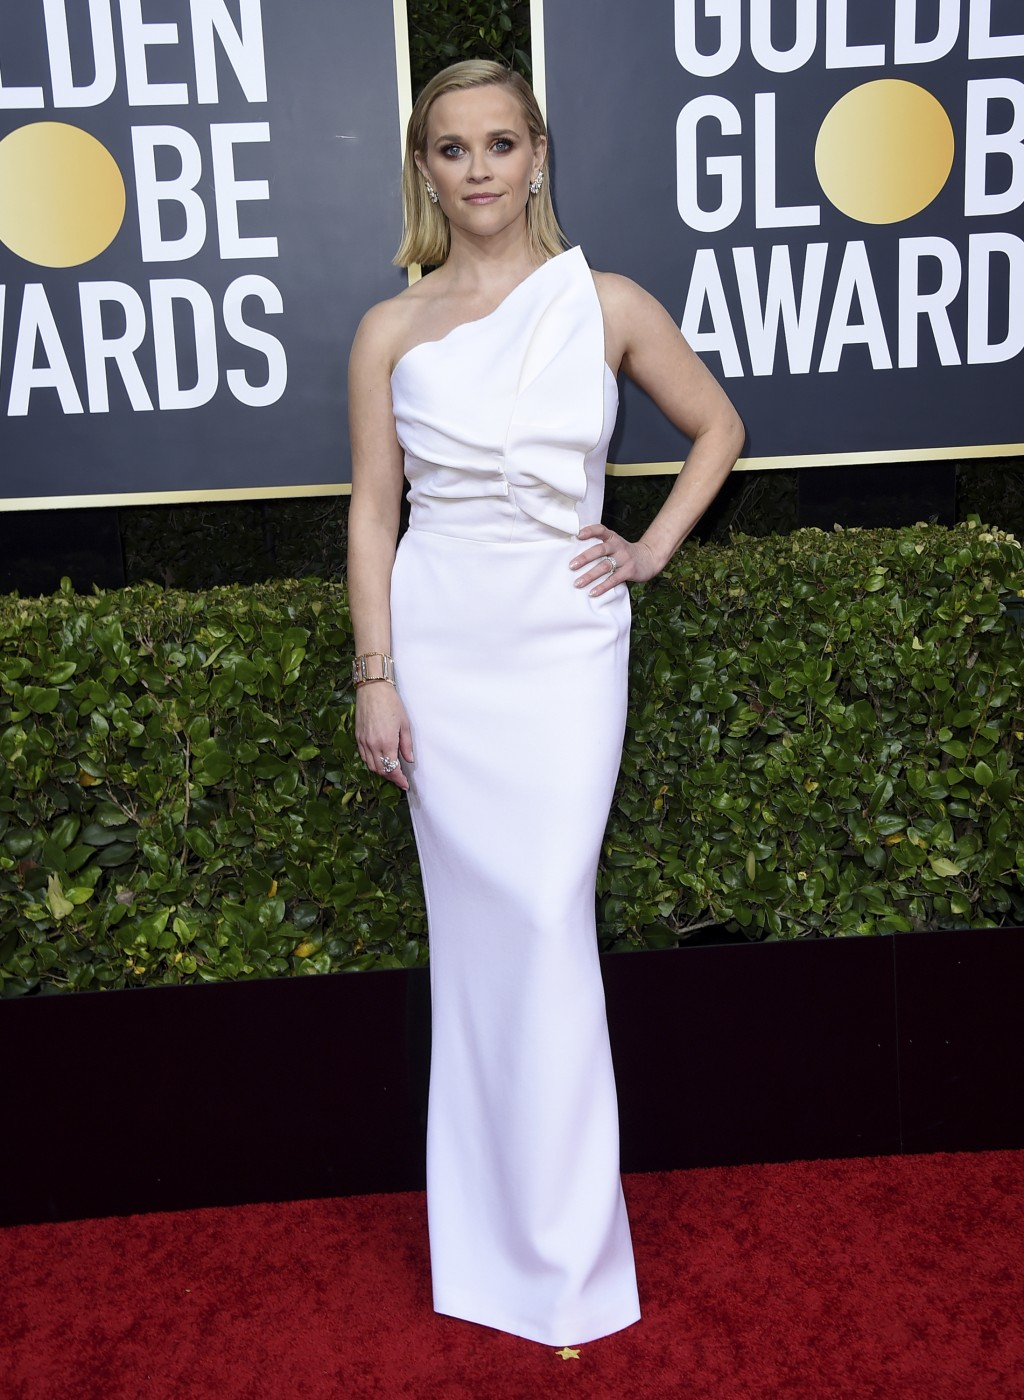 Reese Witherspoon arrives at the 77th annual Golden Globe Awards at the Beverly Hilton Hotel on Sunday, Jan. 5, 2020, in Beverly Hills, Calif. (Photo ...